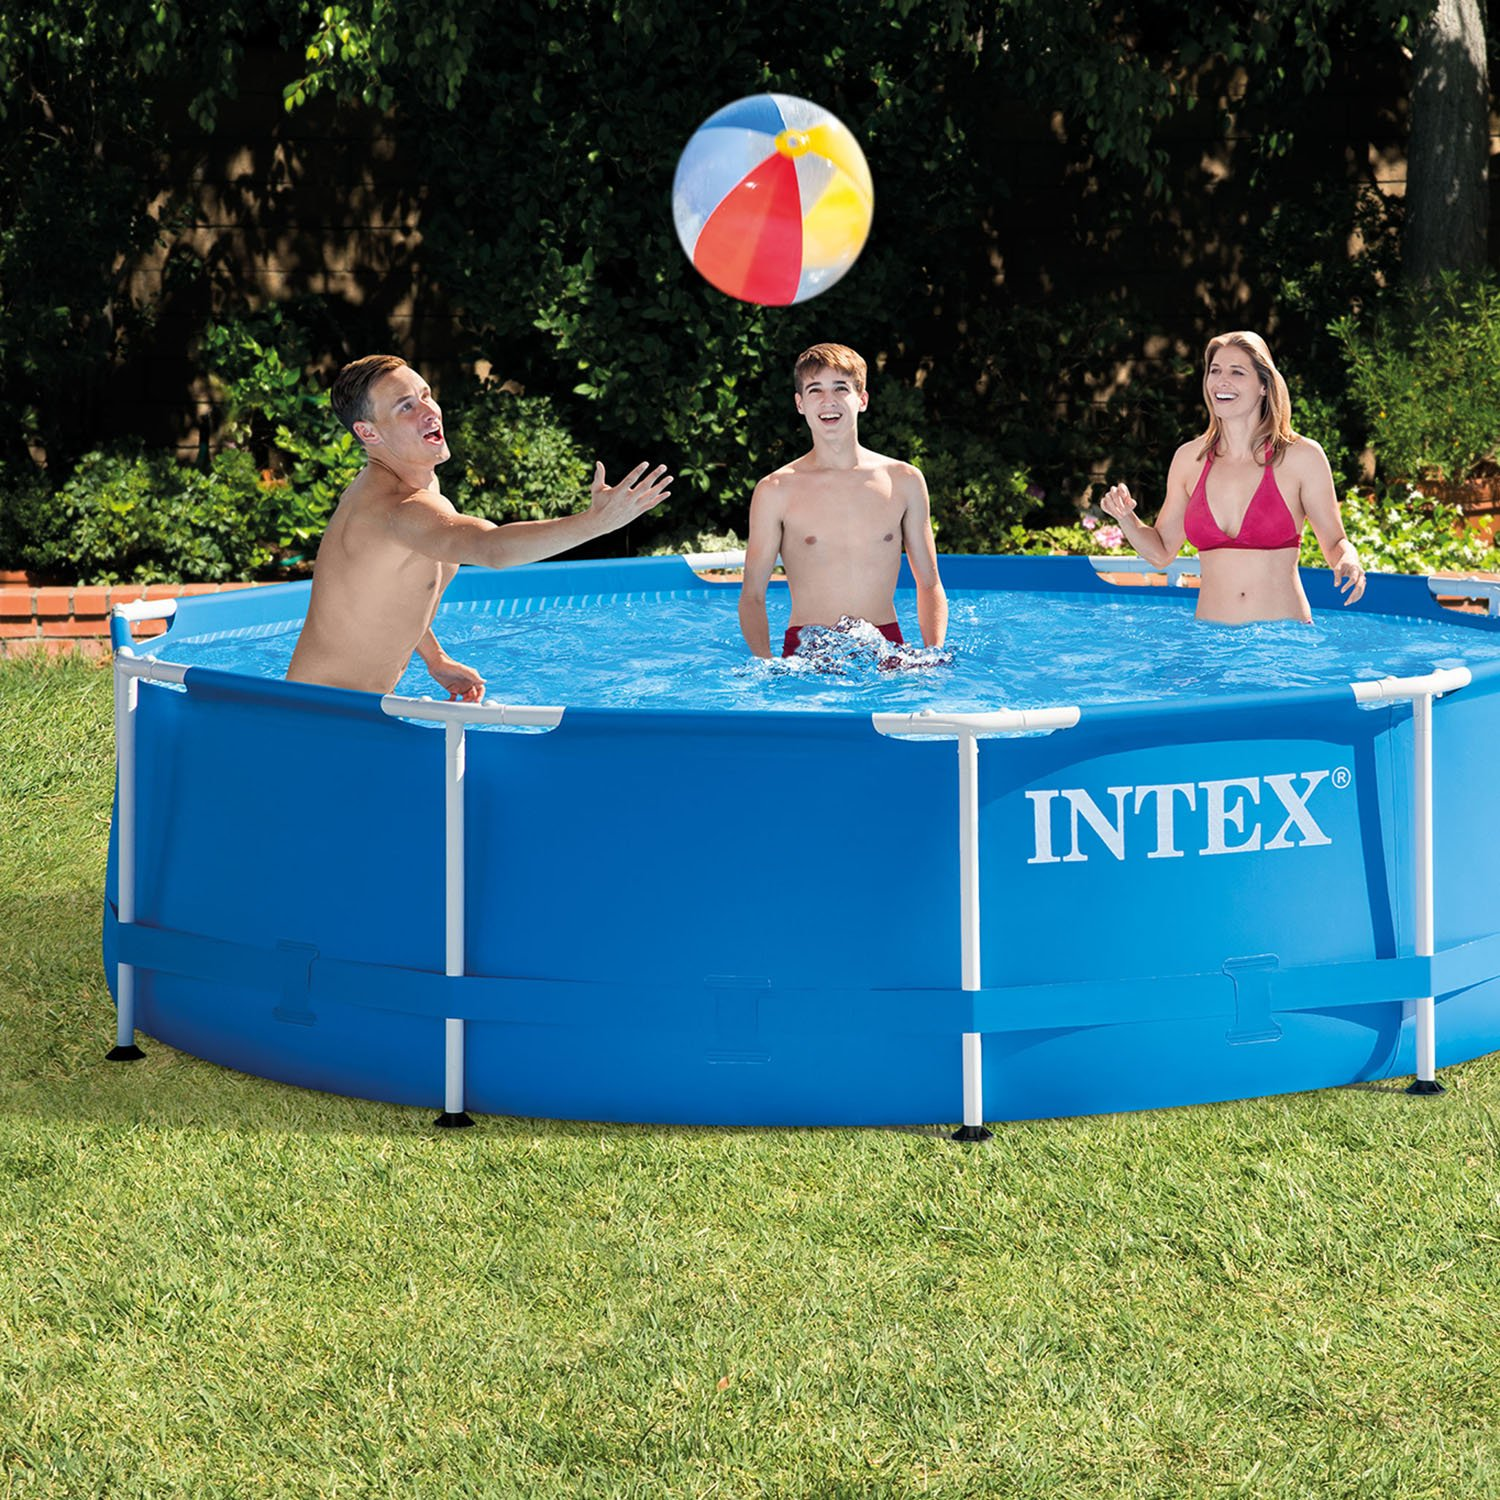 Intex 10 39 X 30 Metal Frame Swimming Pool Set With Filter Pump 28201eh Ebay